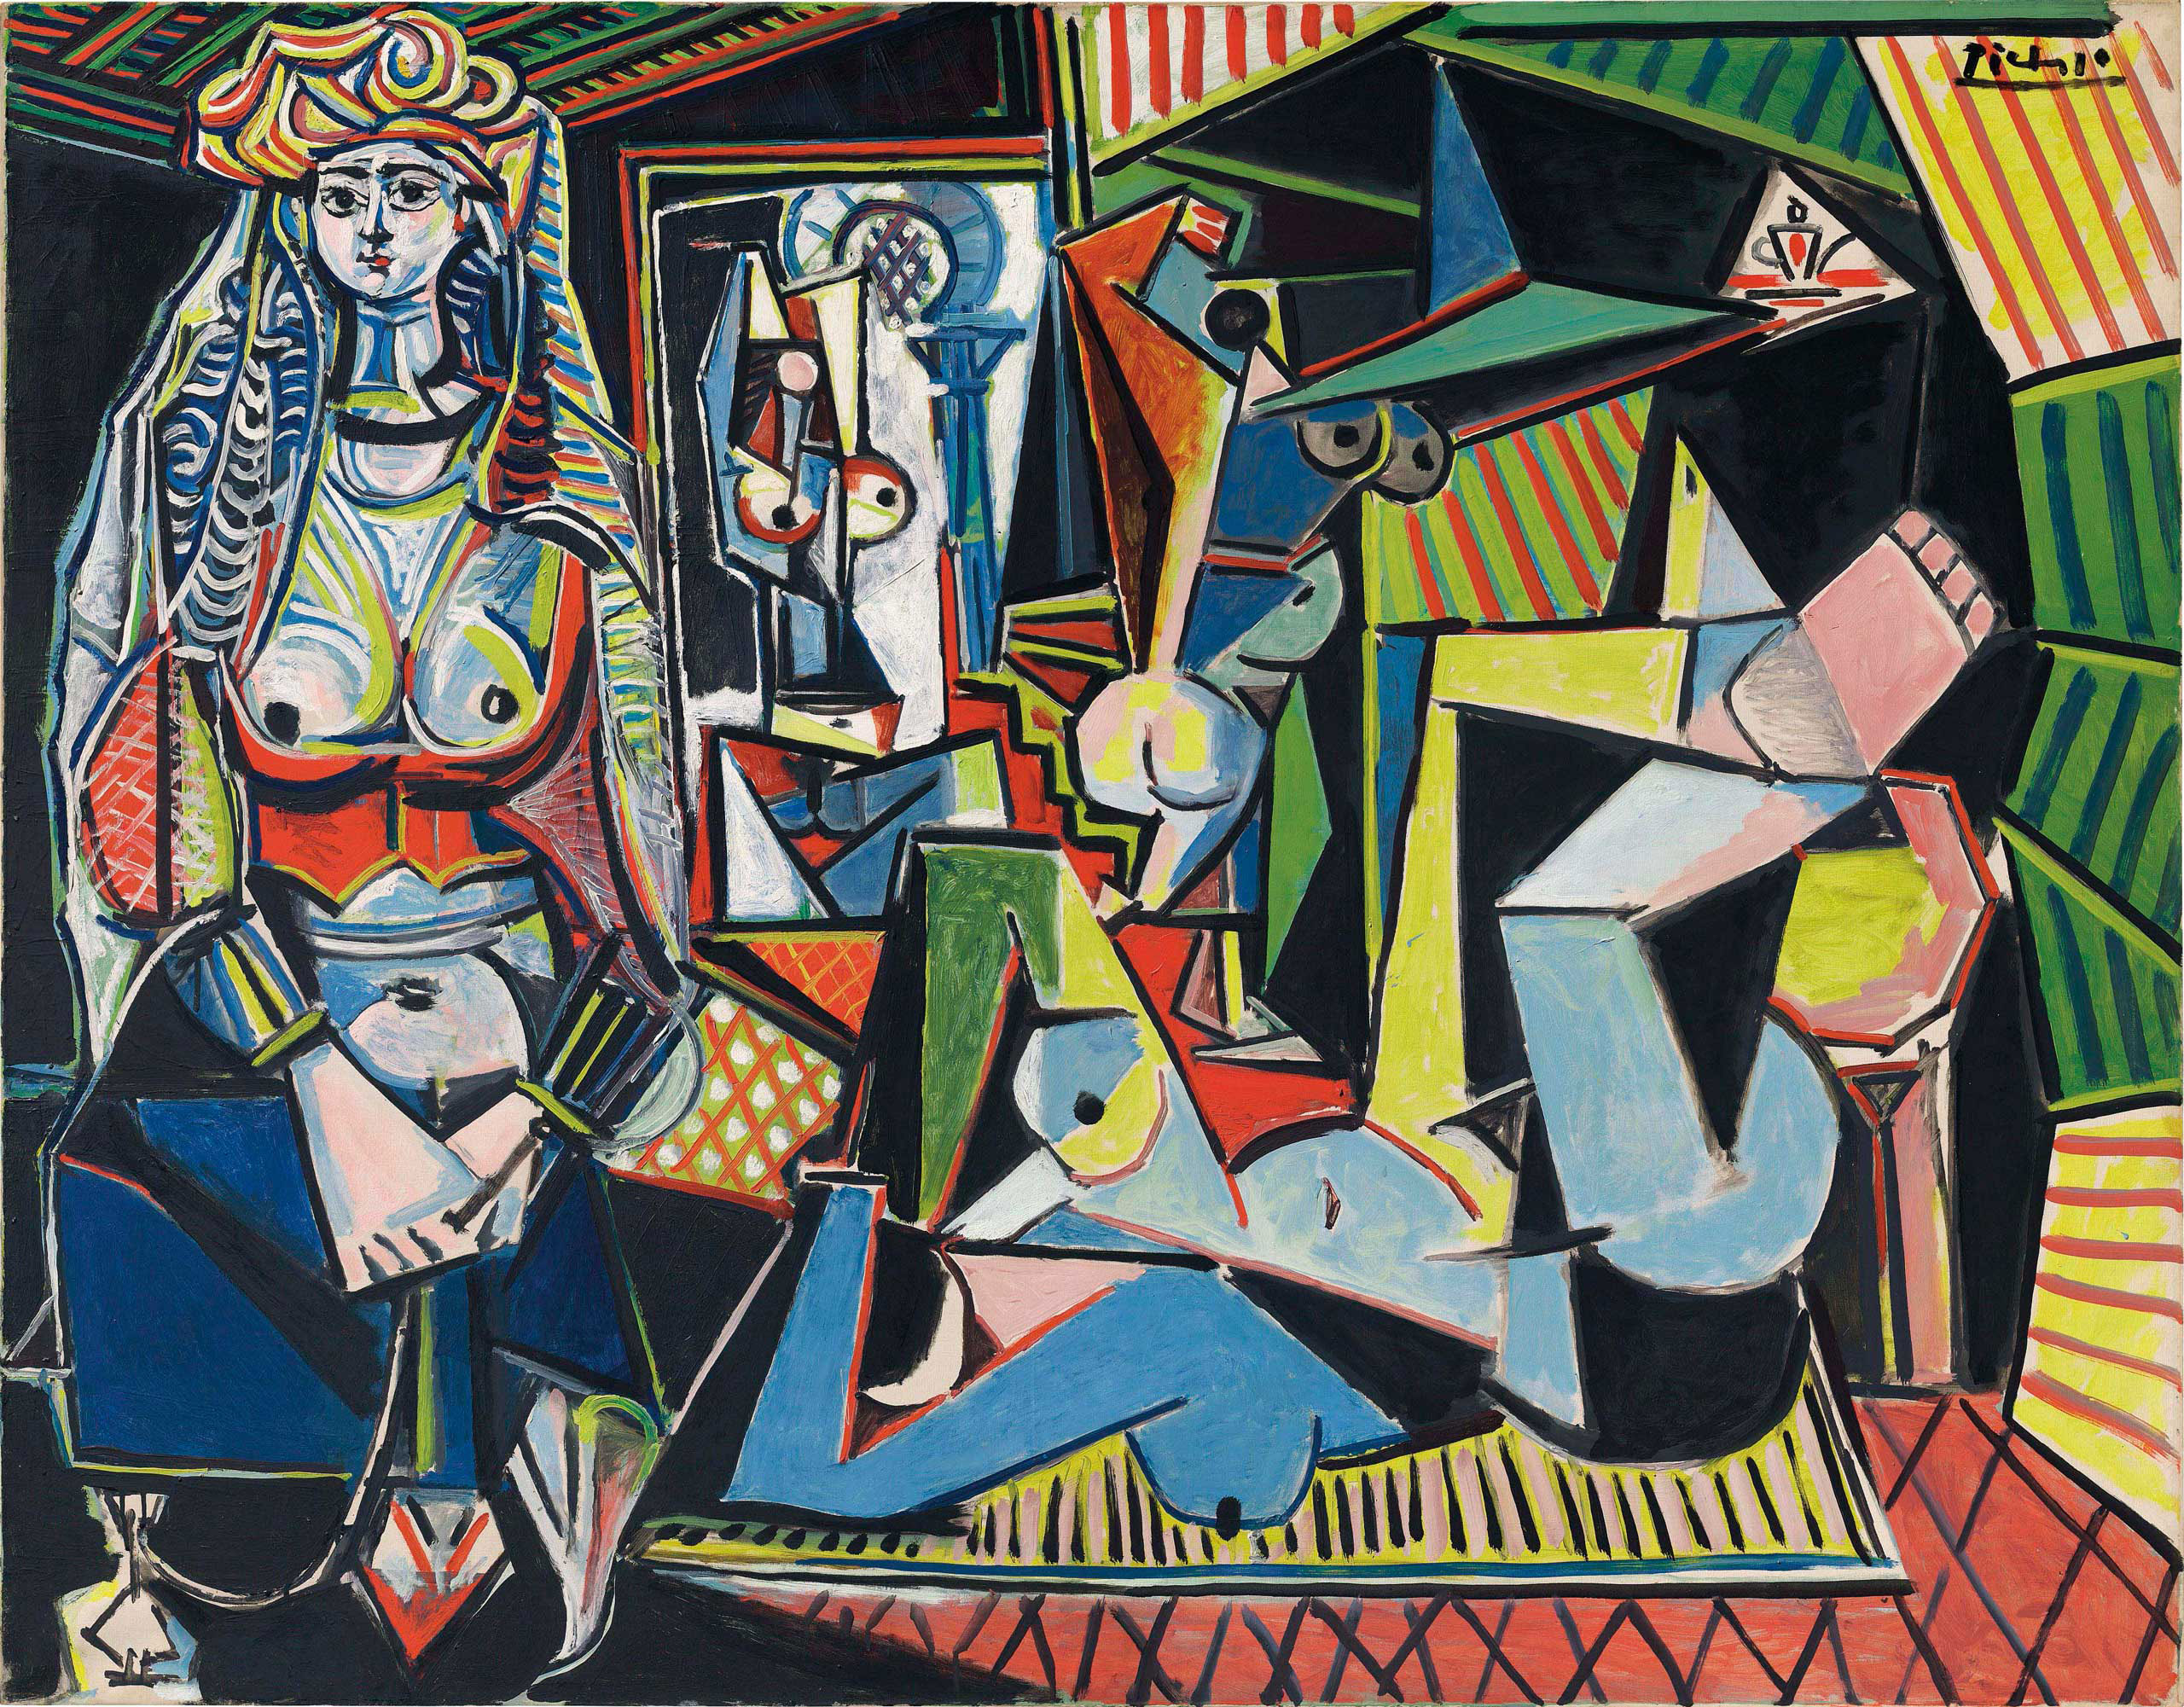 Pablo Picasso's  Women of Algiers (Version O),  auctioned at Christie's in New York City on May 11, 2015.